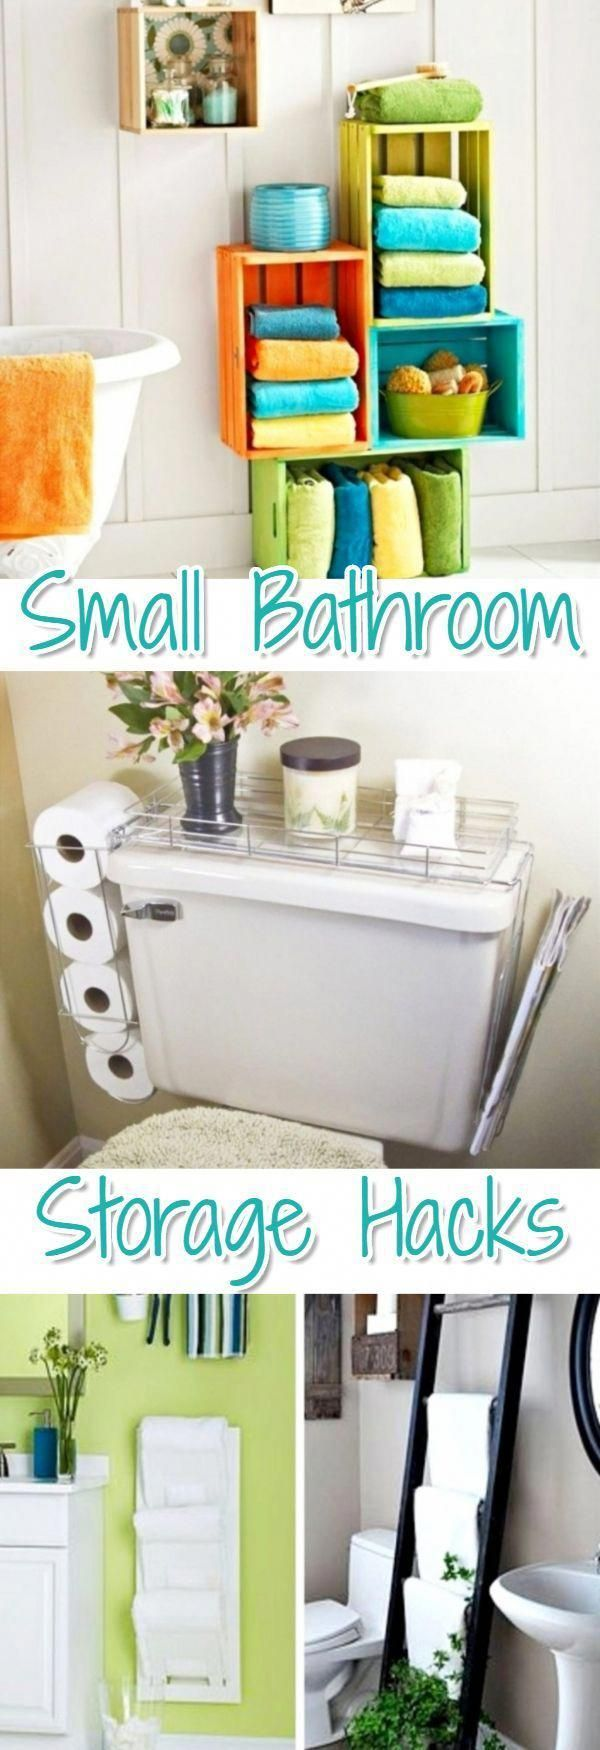 38+ Creative Storage Solutions for Small Spaces (Awesome DIY Ideas!) #storagesolutions